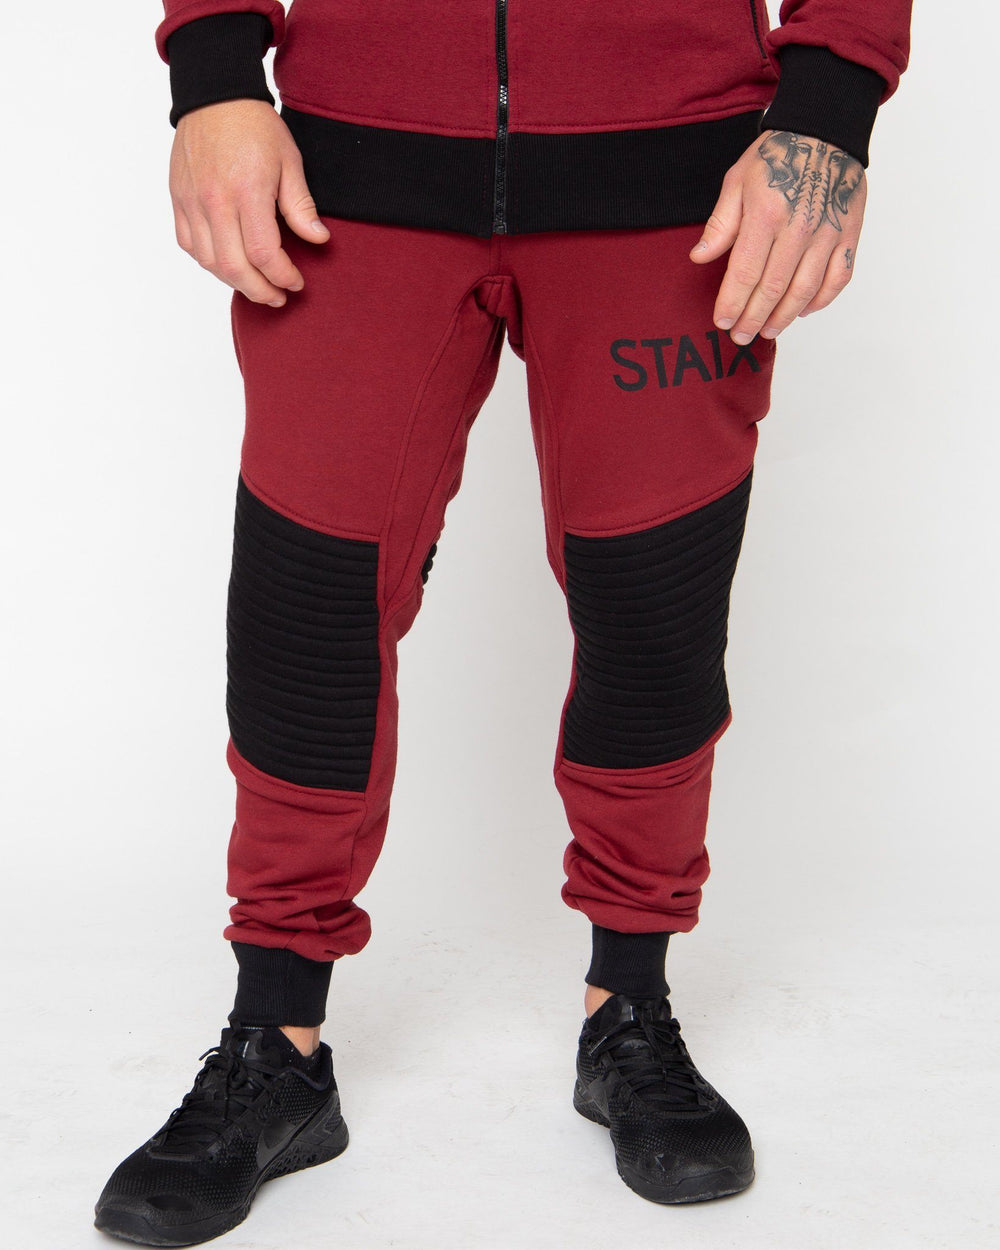 VALOR SWEATS STAIX SMALL RED/BLACK